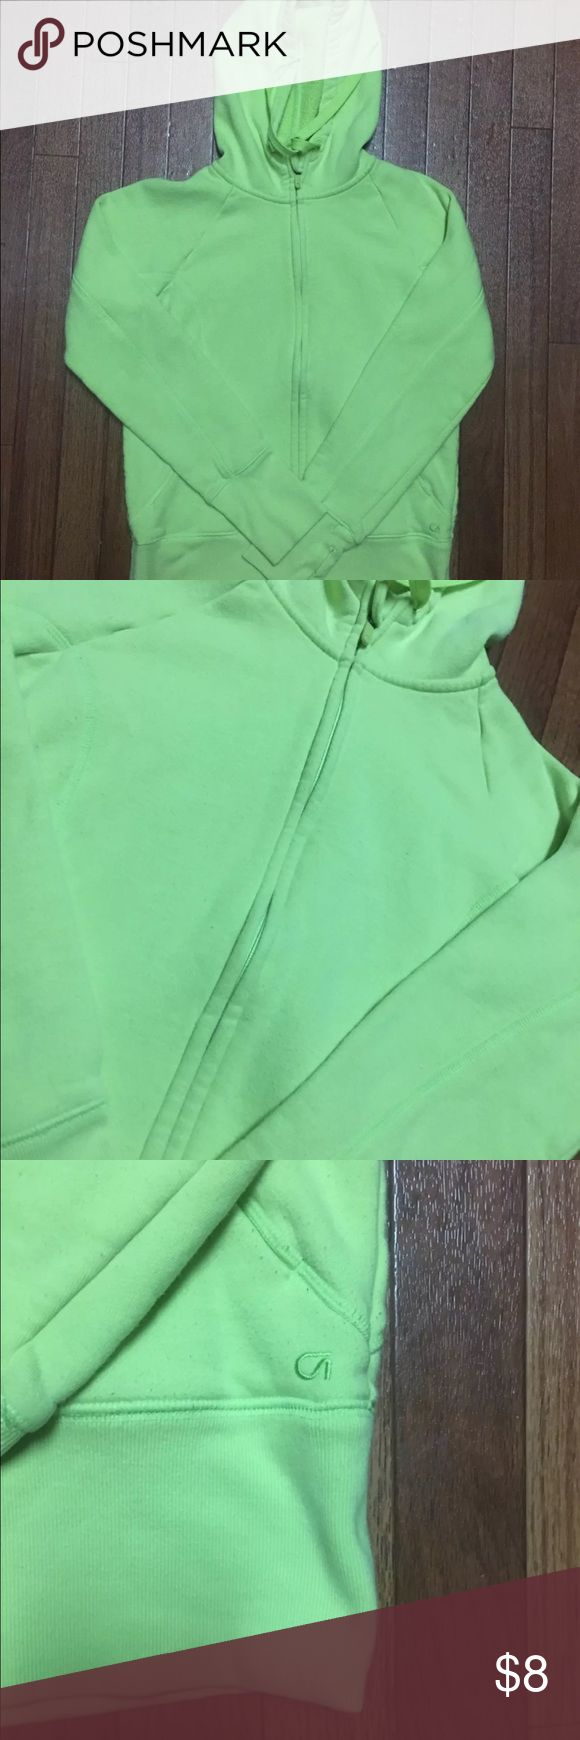 Gap Fit women's zip up hoodie Gap Fit women's zip up hoodie. Mock neck. Size S. color lime green GAP Tops Sweatshirts & Hoodies